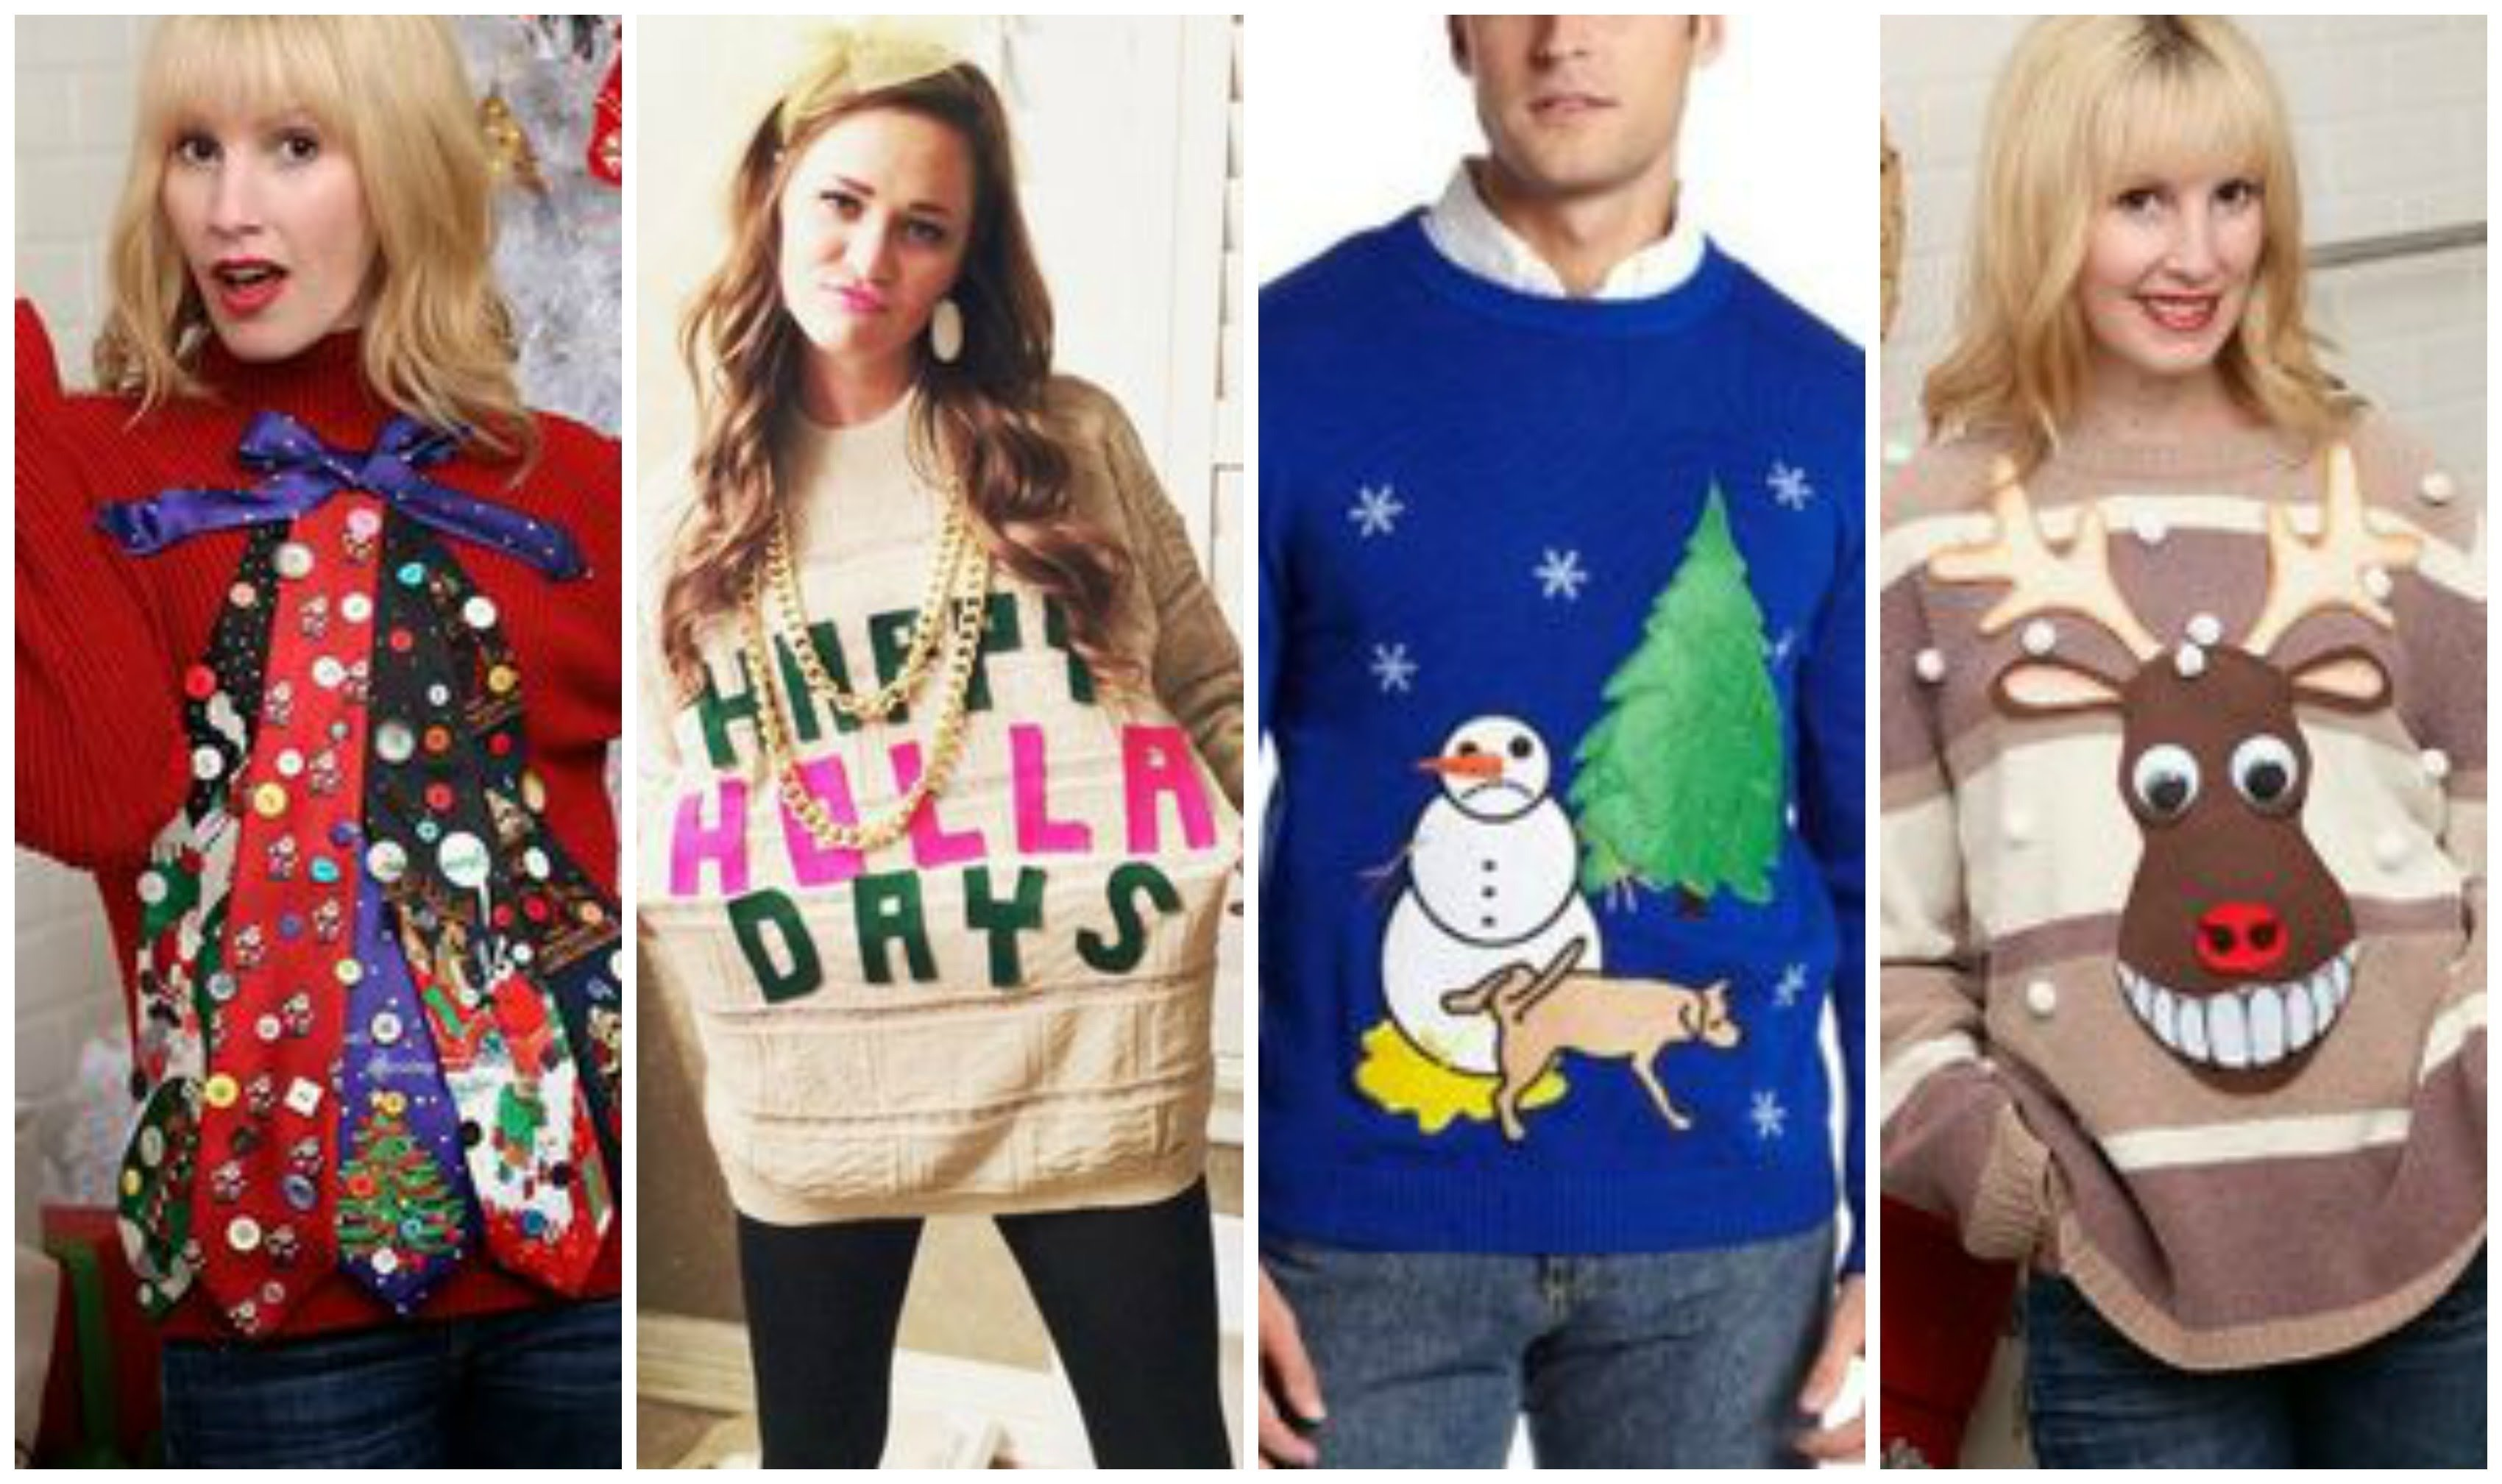 10 Wonderful How To Make An Ugly Christmas Sweater Ideas ugly christmas sweater ideas lookbook youtube 3